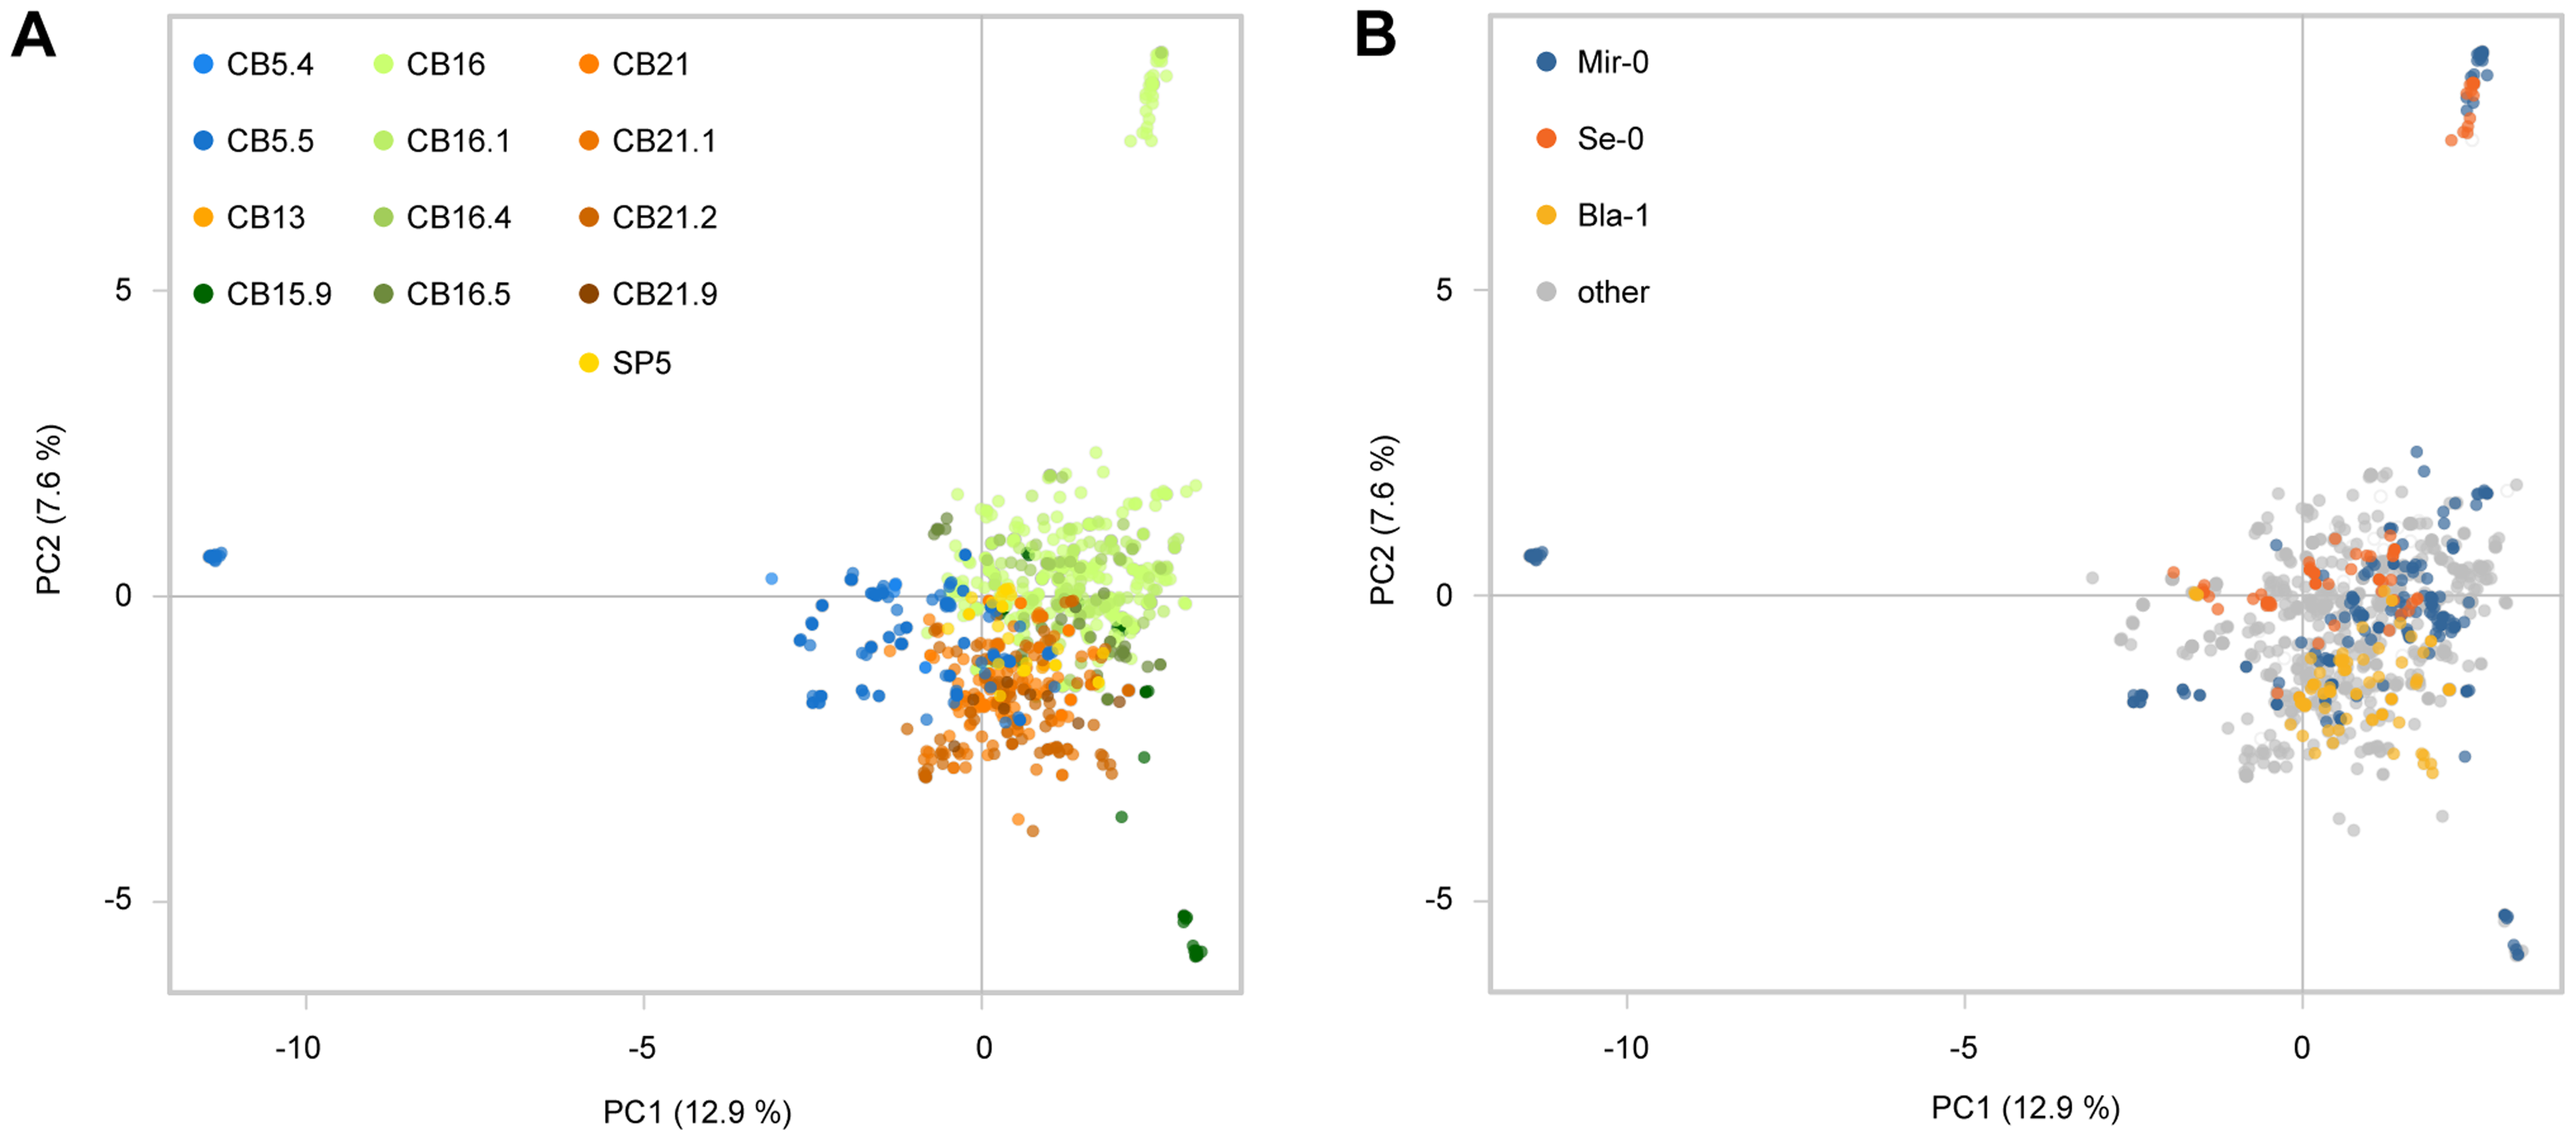 Genome-wide analysis of Costa Brava populations.